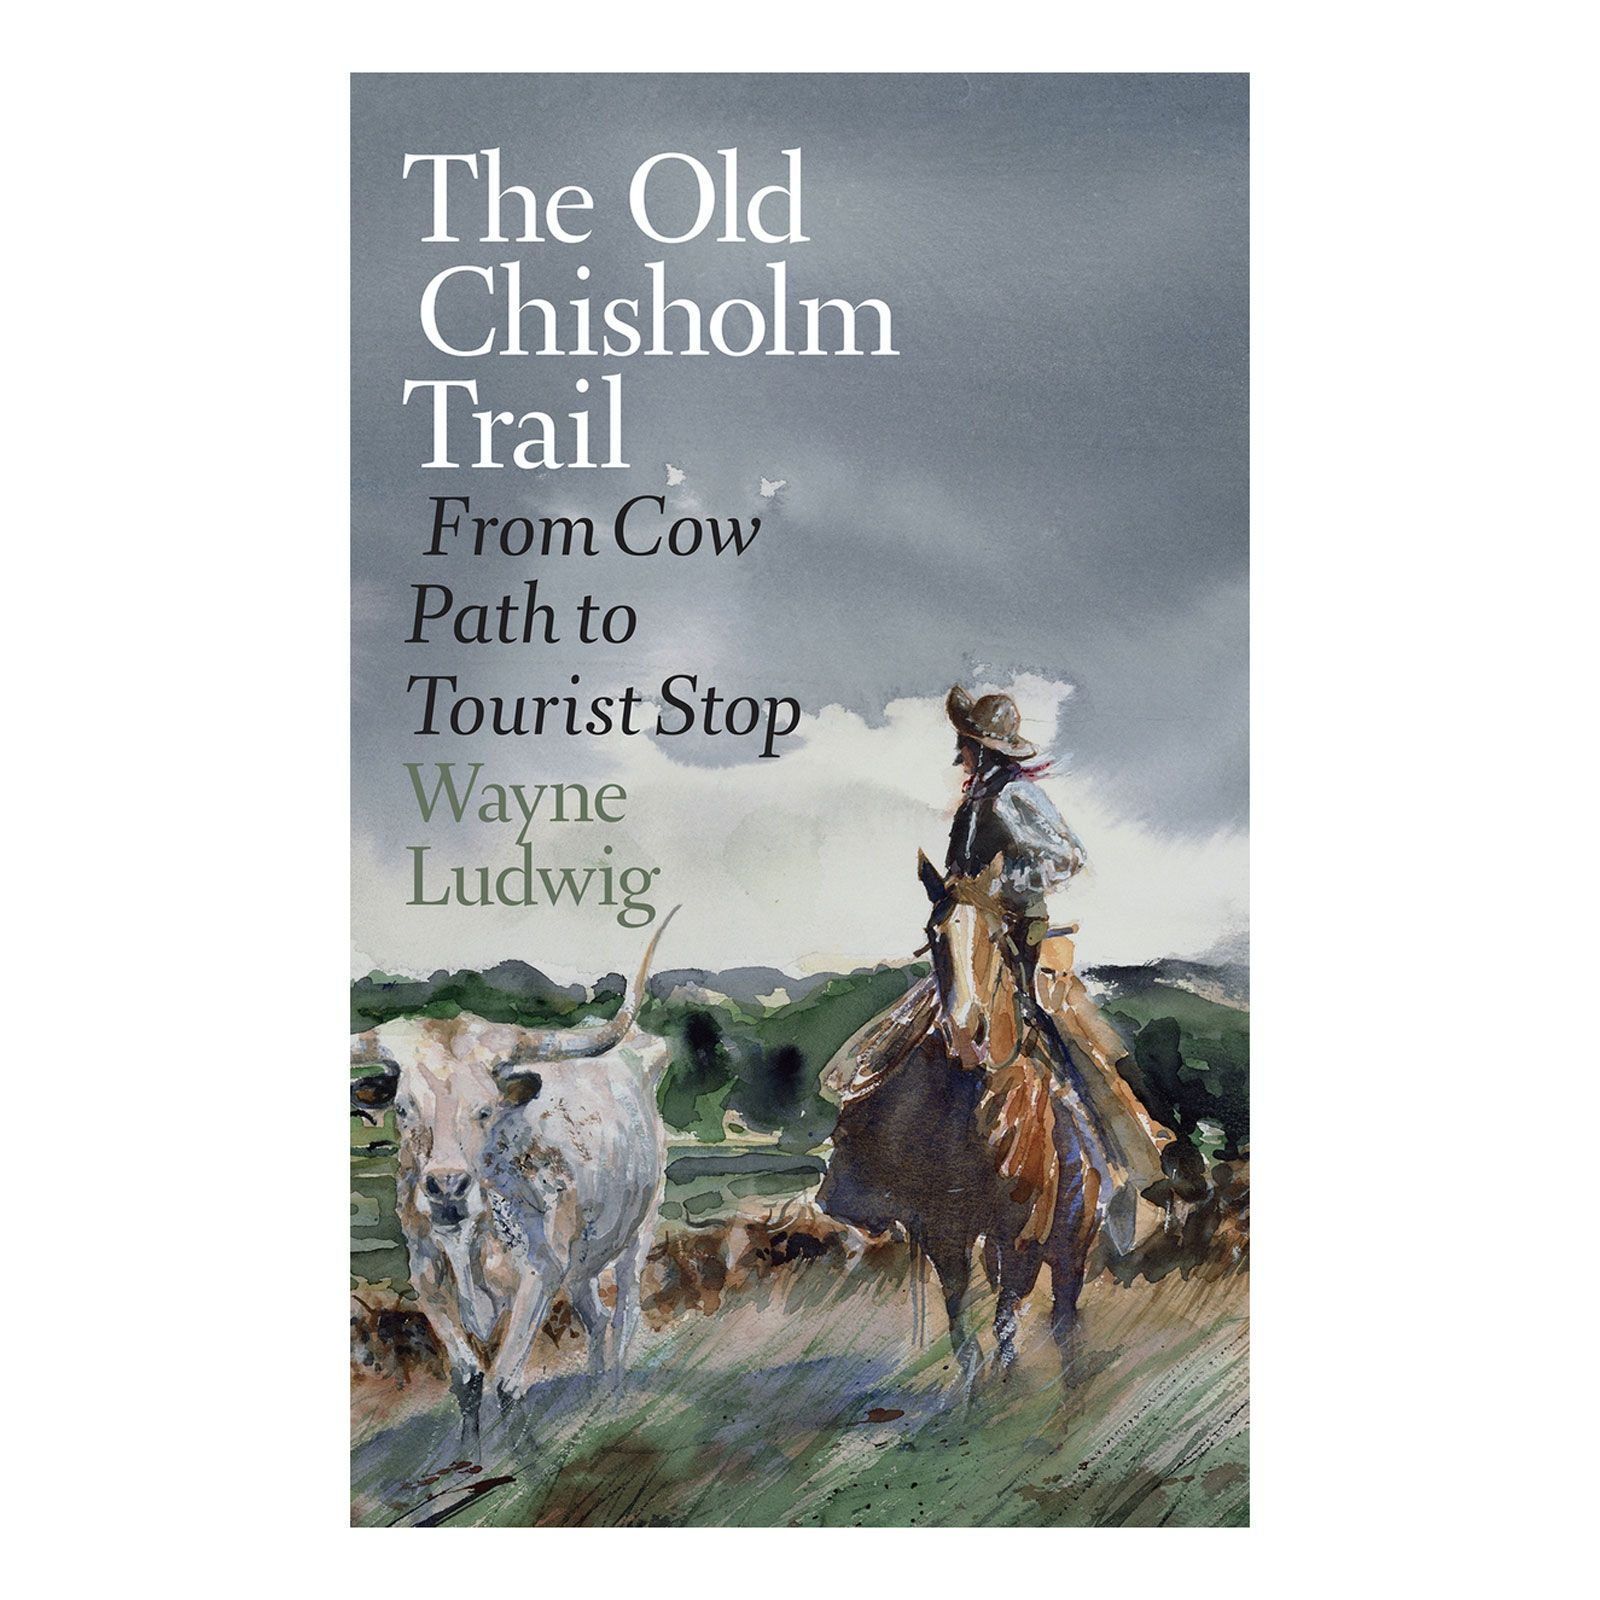 The Old Chisholm Trail: From Cow Path to Tourist Stop